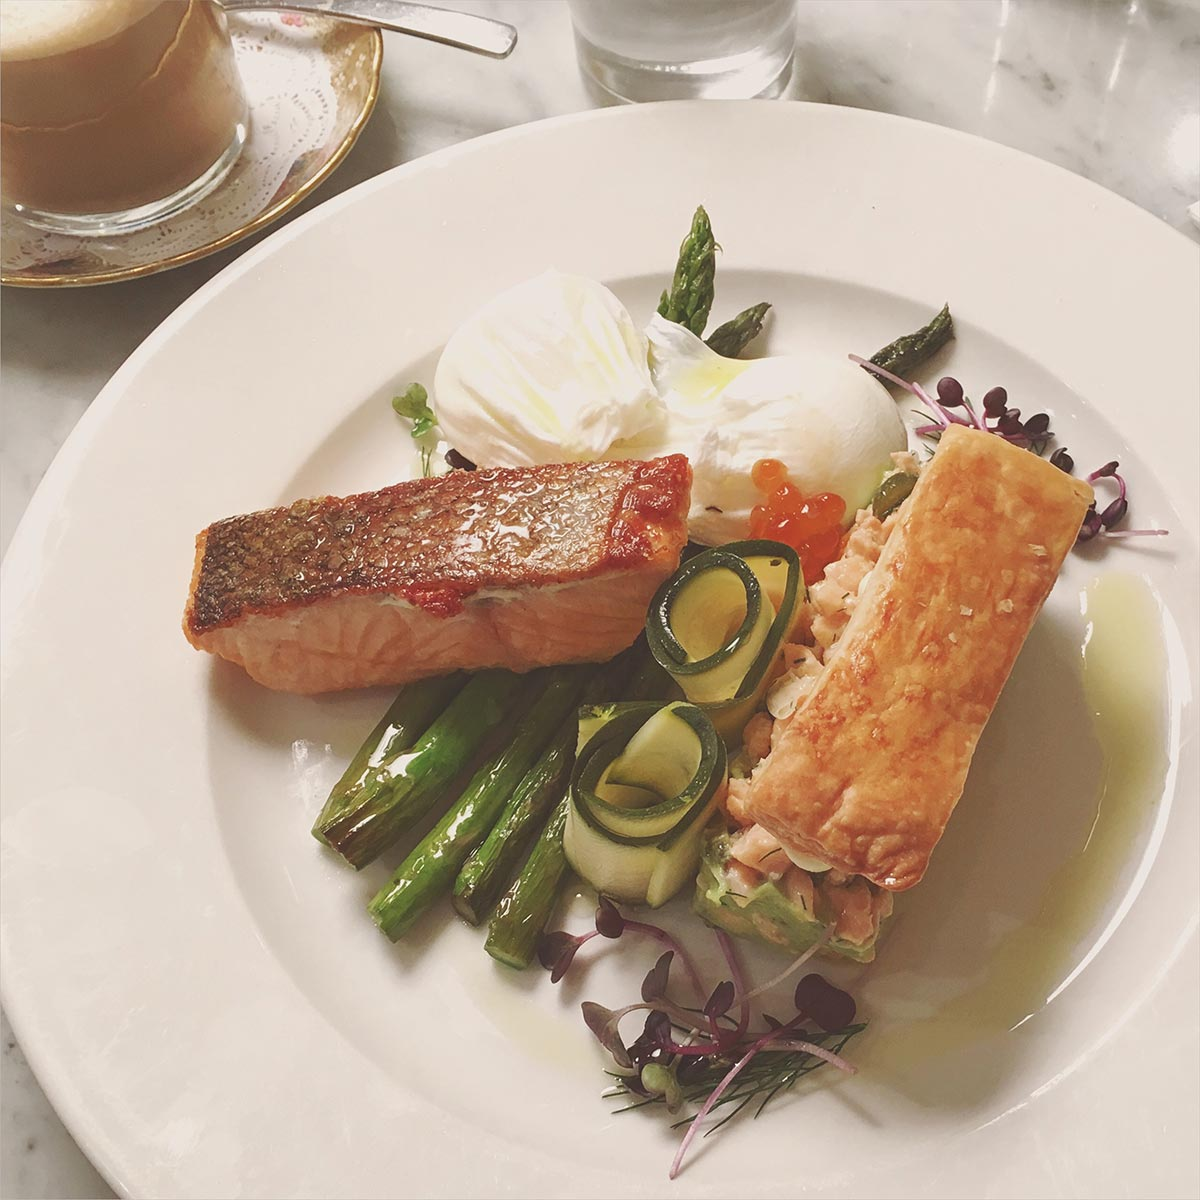 Salmon millefeuille at The Hardware Societe